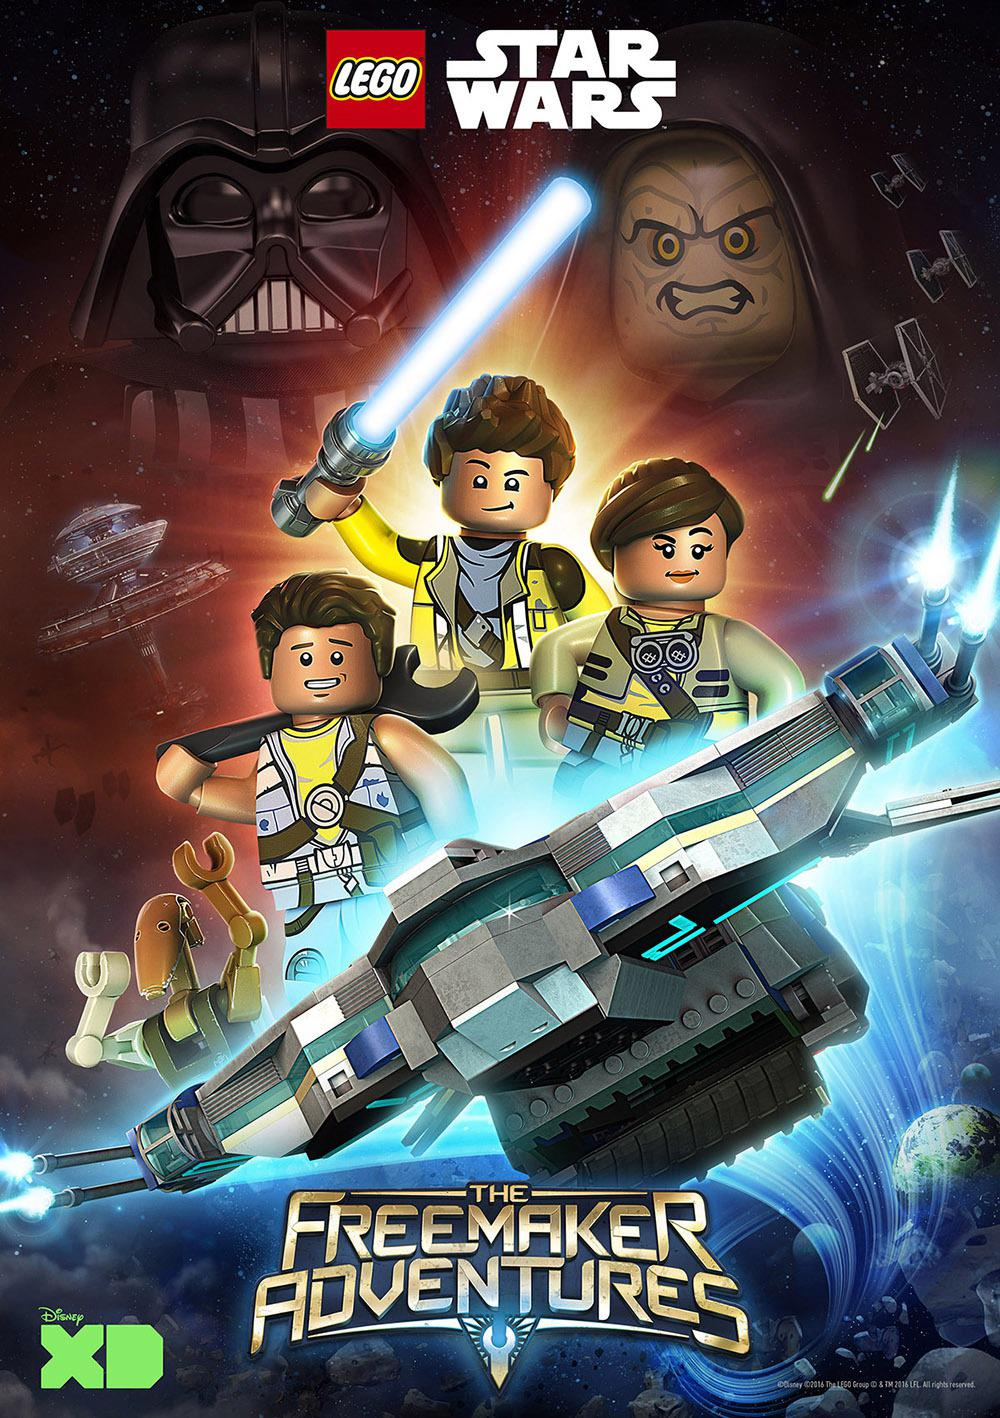 Star Wars Lego - LEGO Star Wars the freemaker adventures